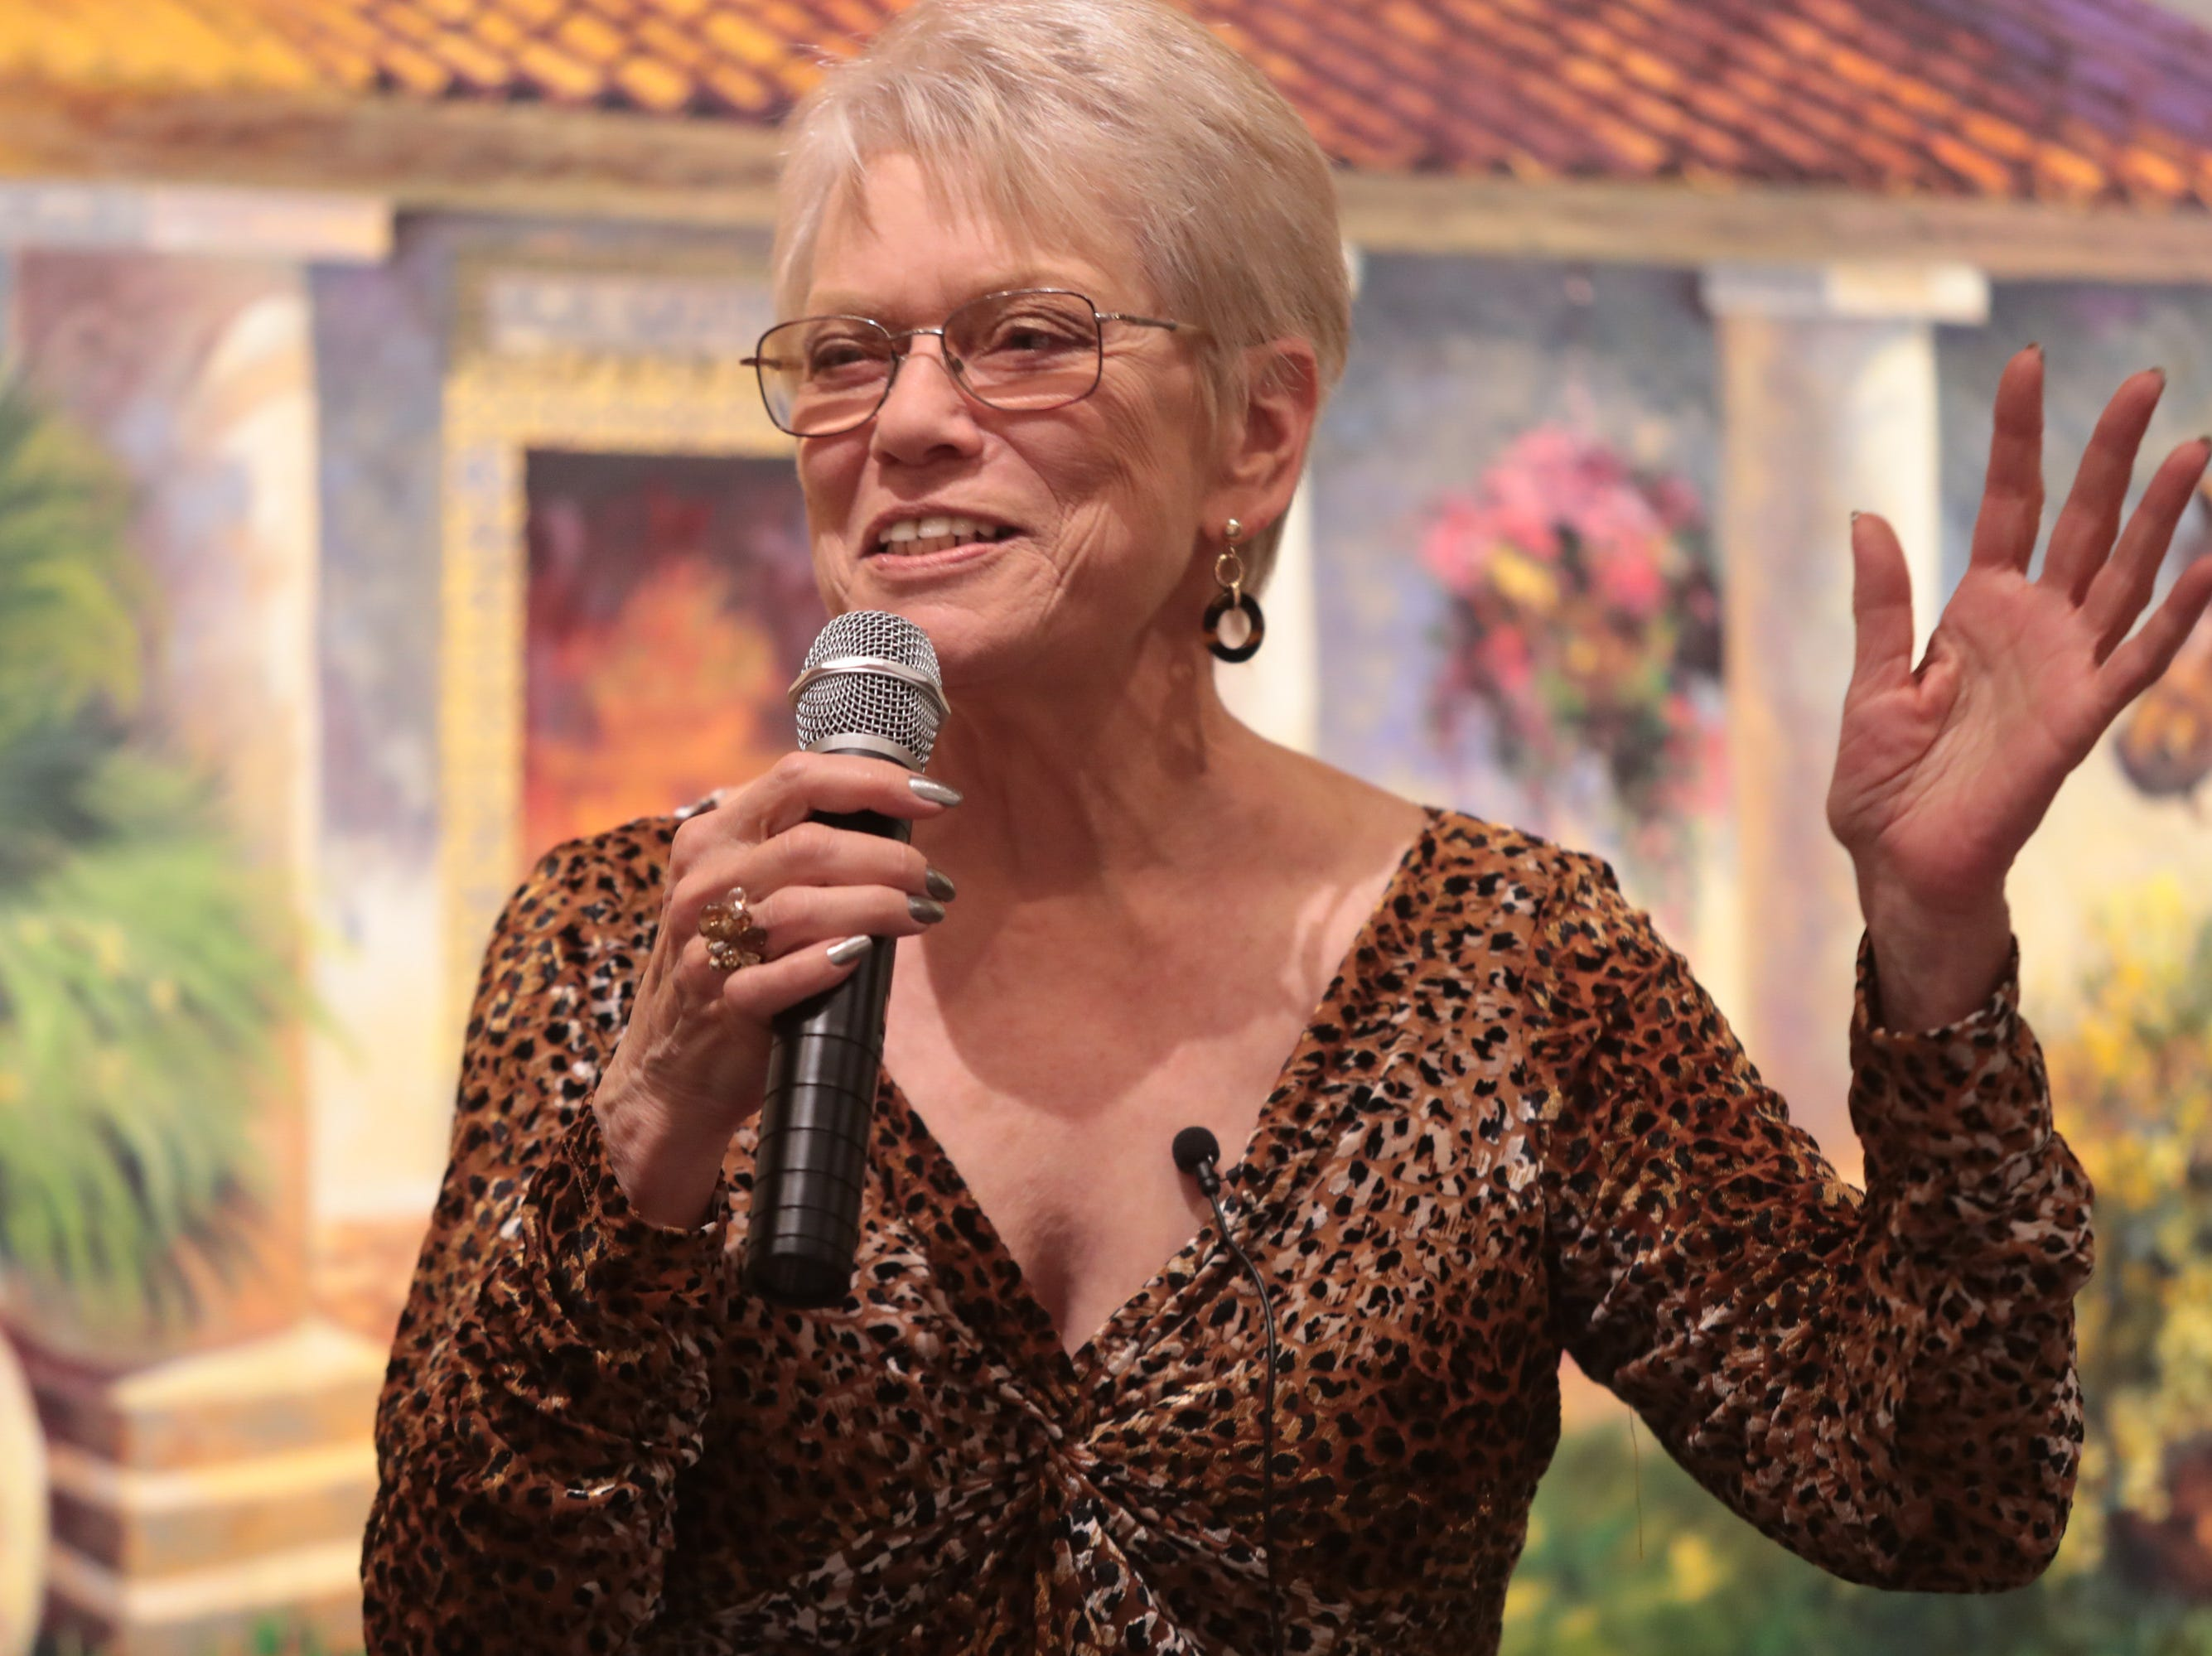 """Anita Rufus shares an emotional story about family and """"searching"""" at the Coachella Valley Storytellers Project, La Quinta, Calif., March 21, 2019."""